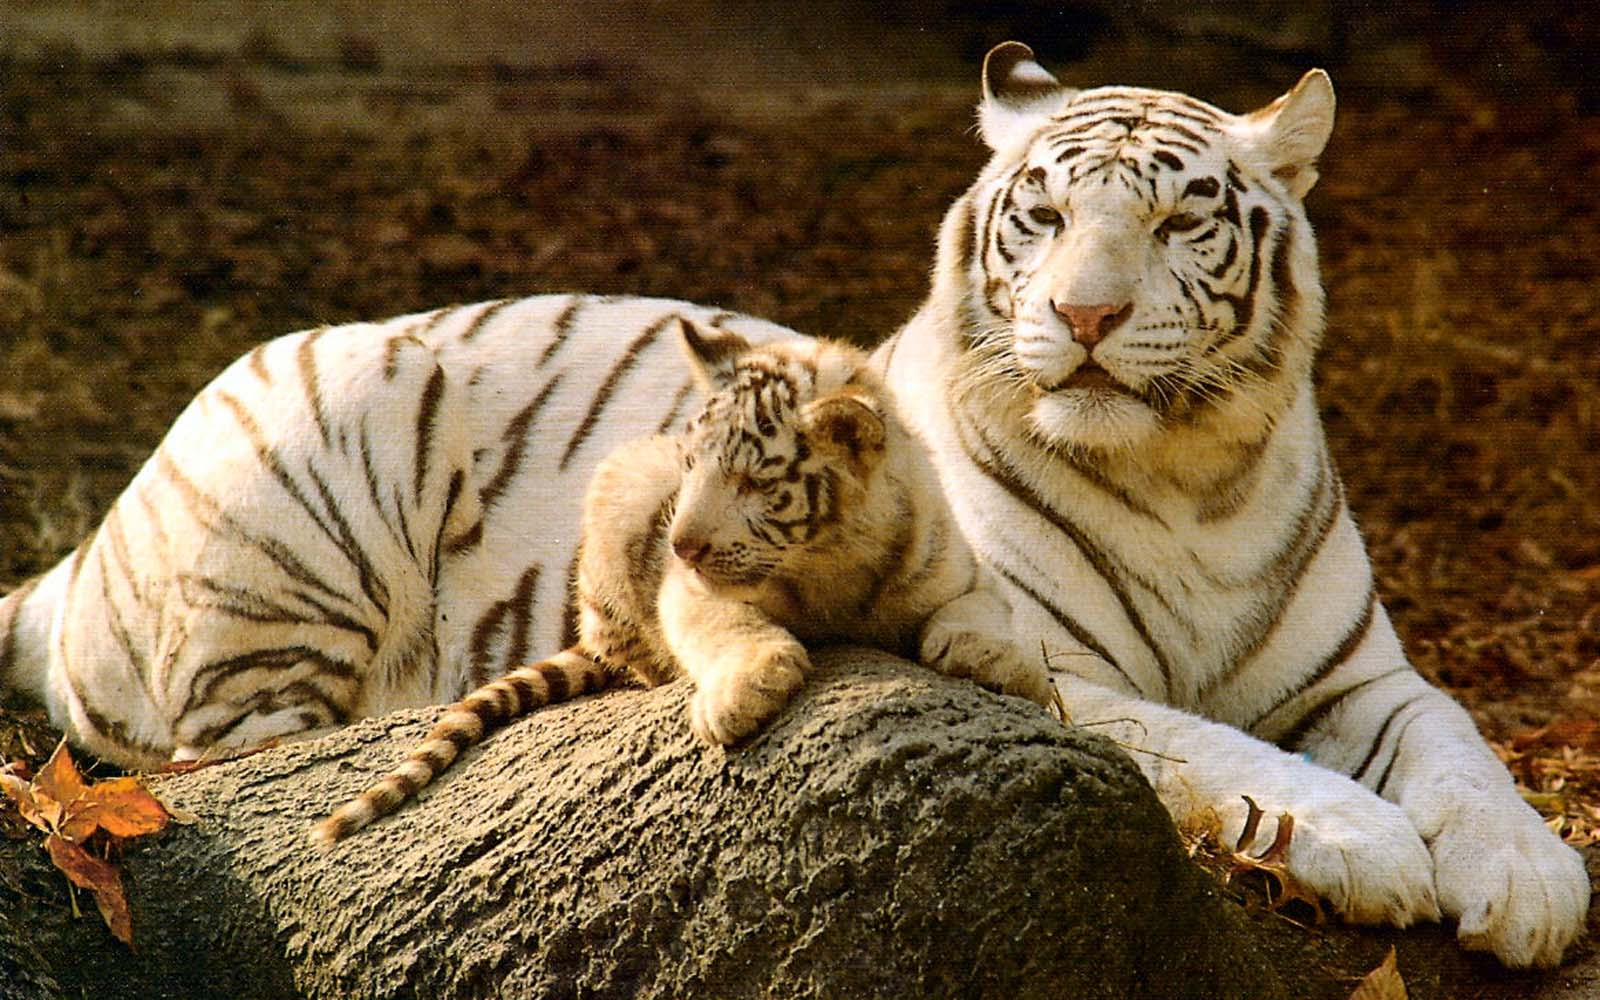 Baby White Tigers For Sale  wallpaper Cute Tiger Wallpapers  Wallpaper  1600x1000